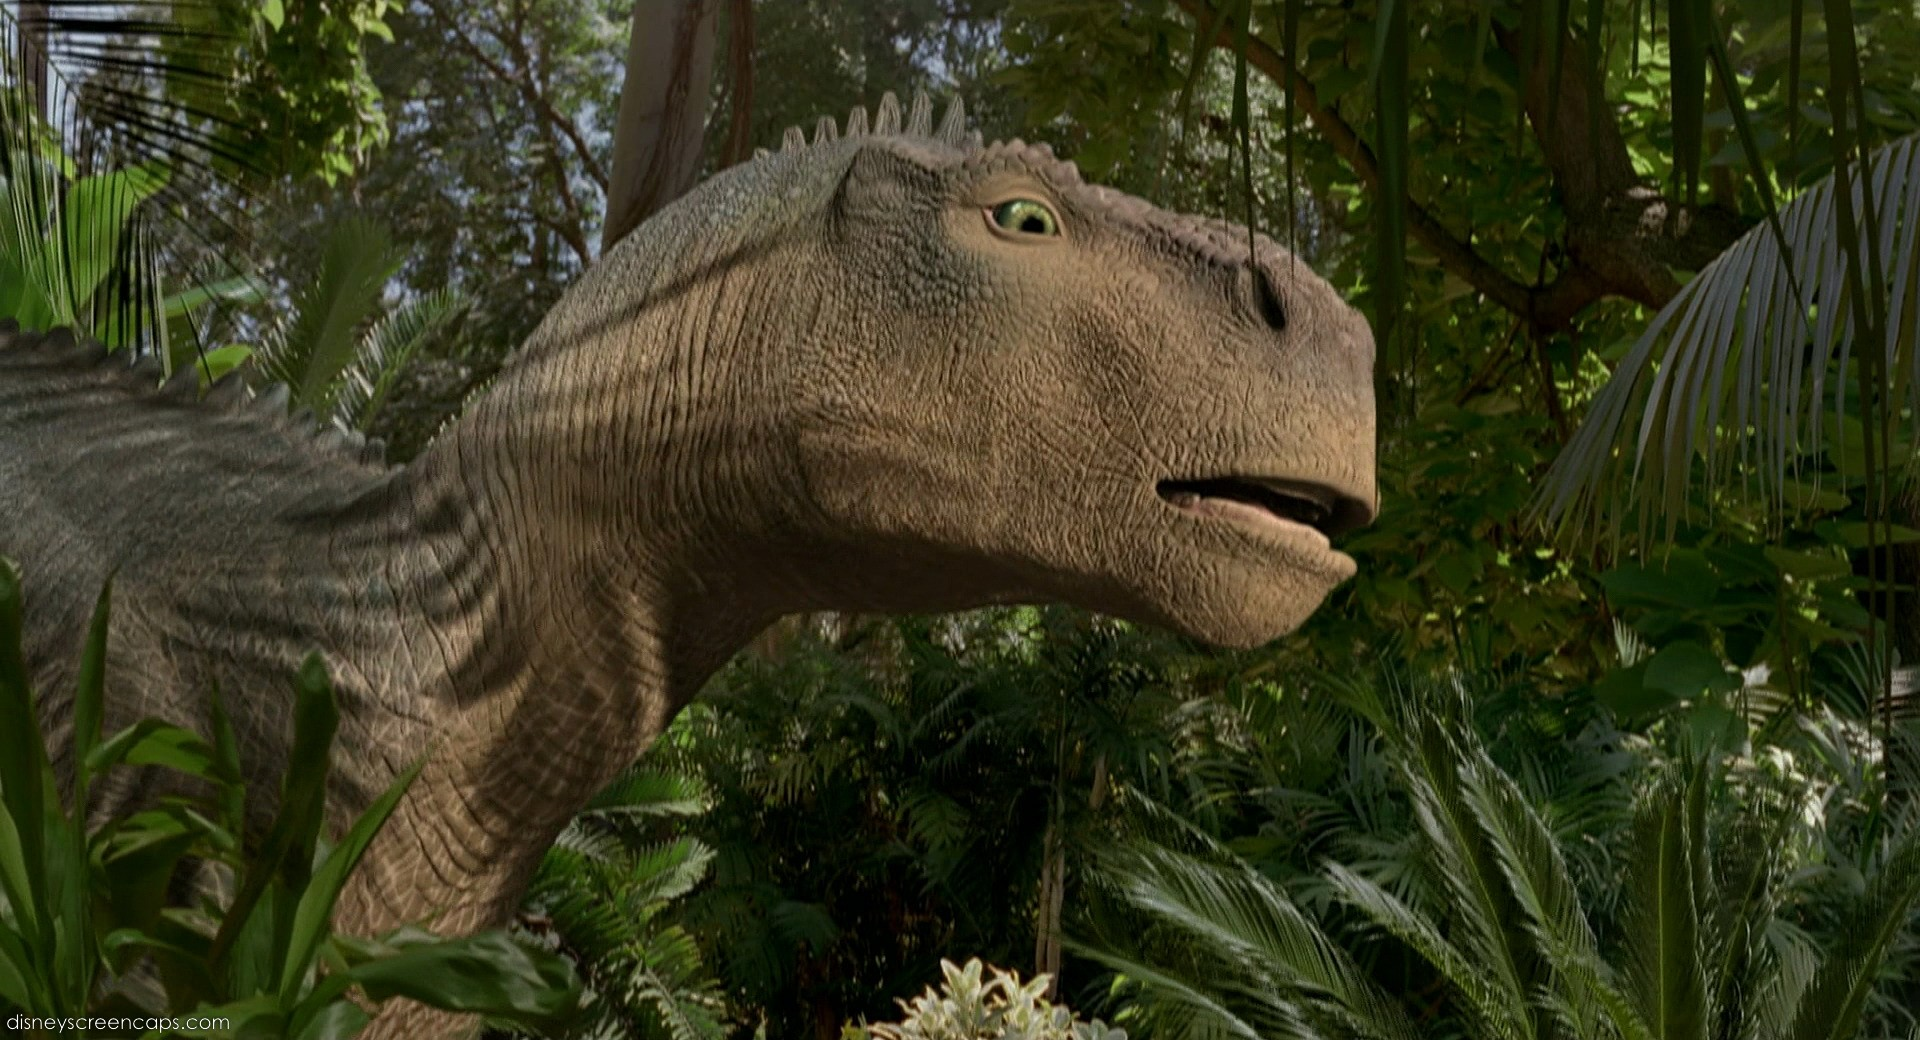 Can you name this dinosaur from Disney's (not Pixar's) first CGI film?